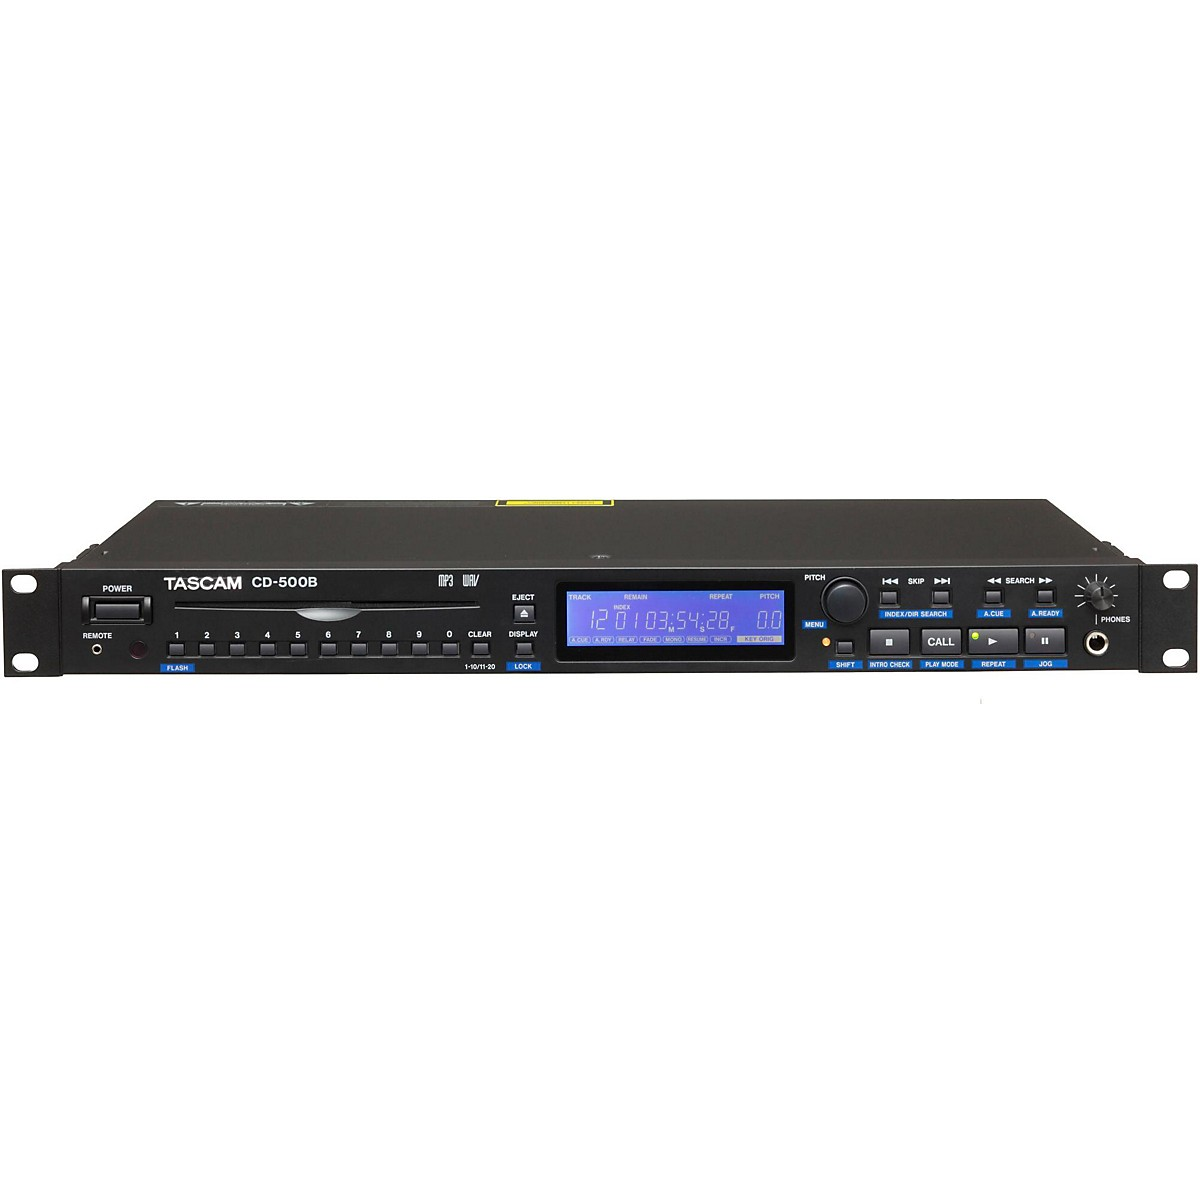 Tascam CD-500B Professional CD Player